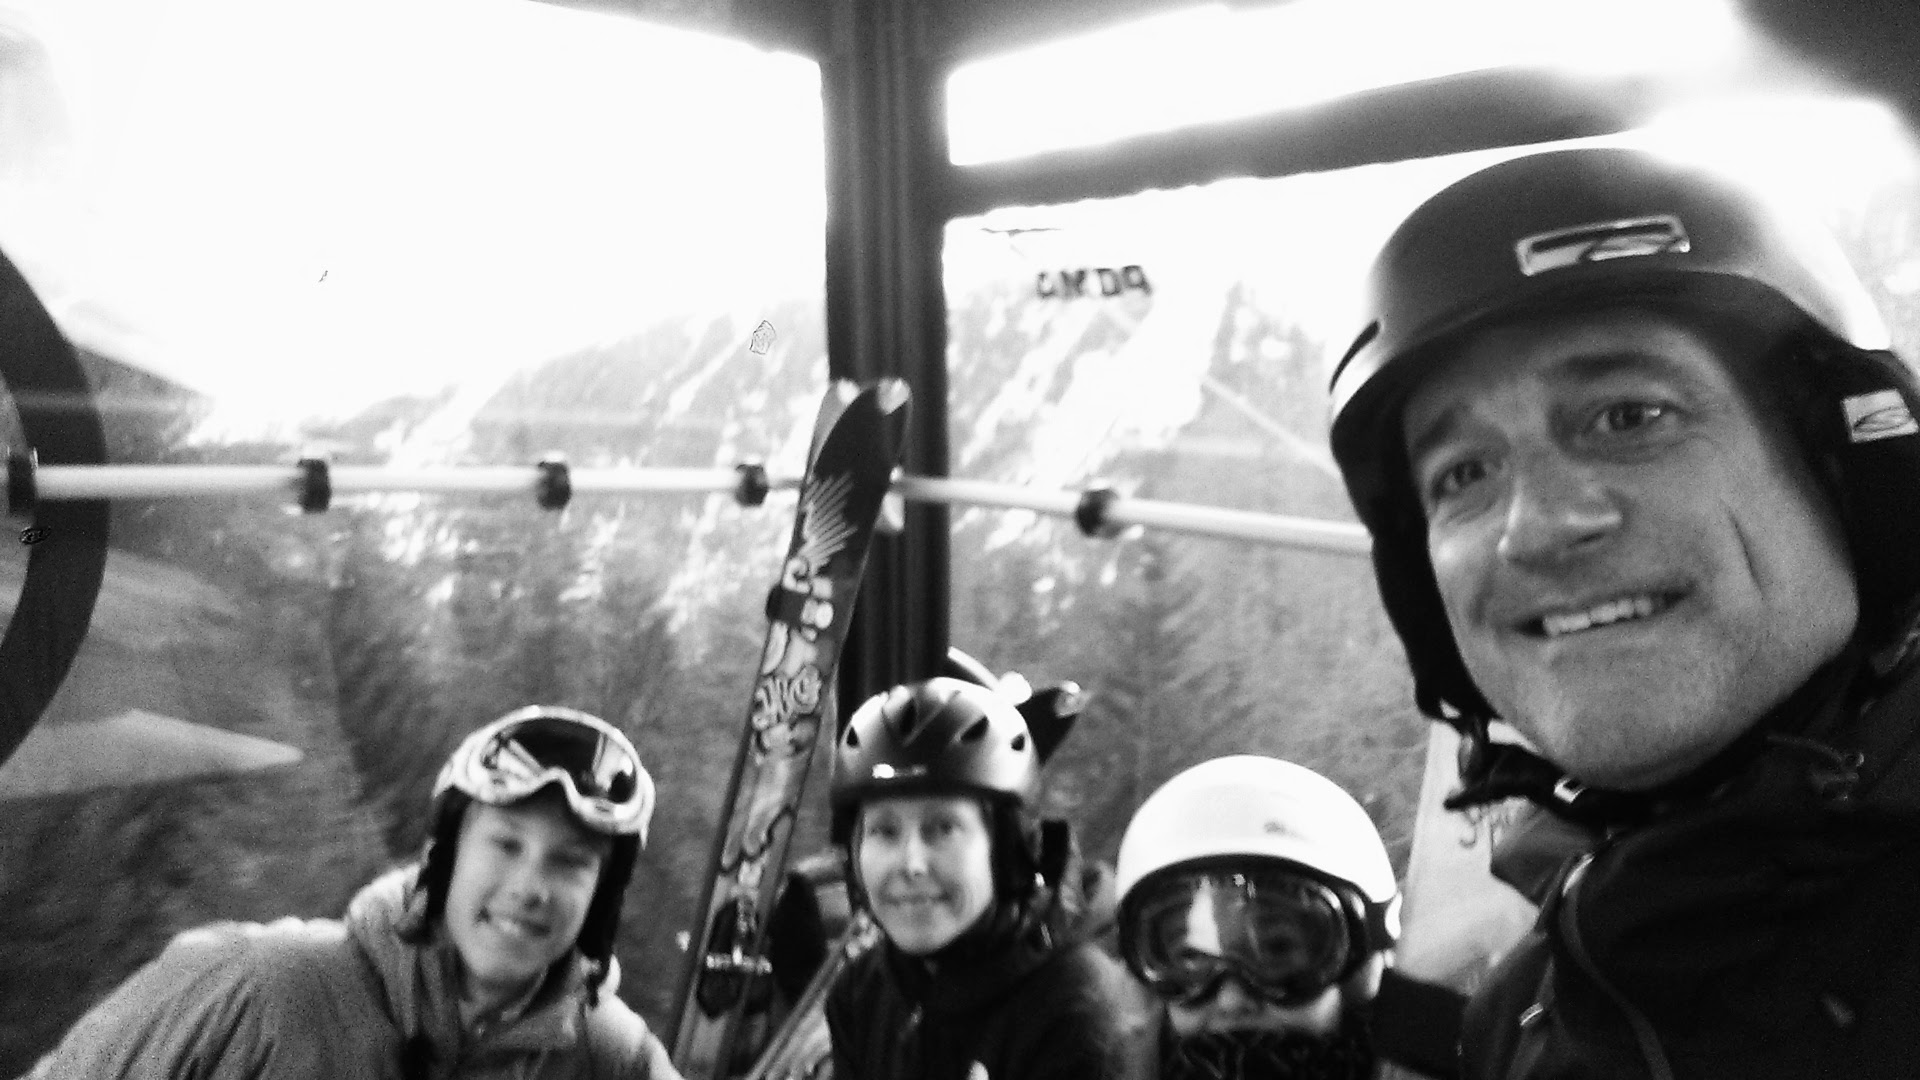 Our first gondola ride in Chamonix